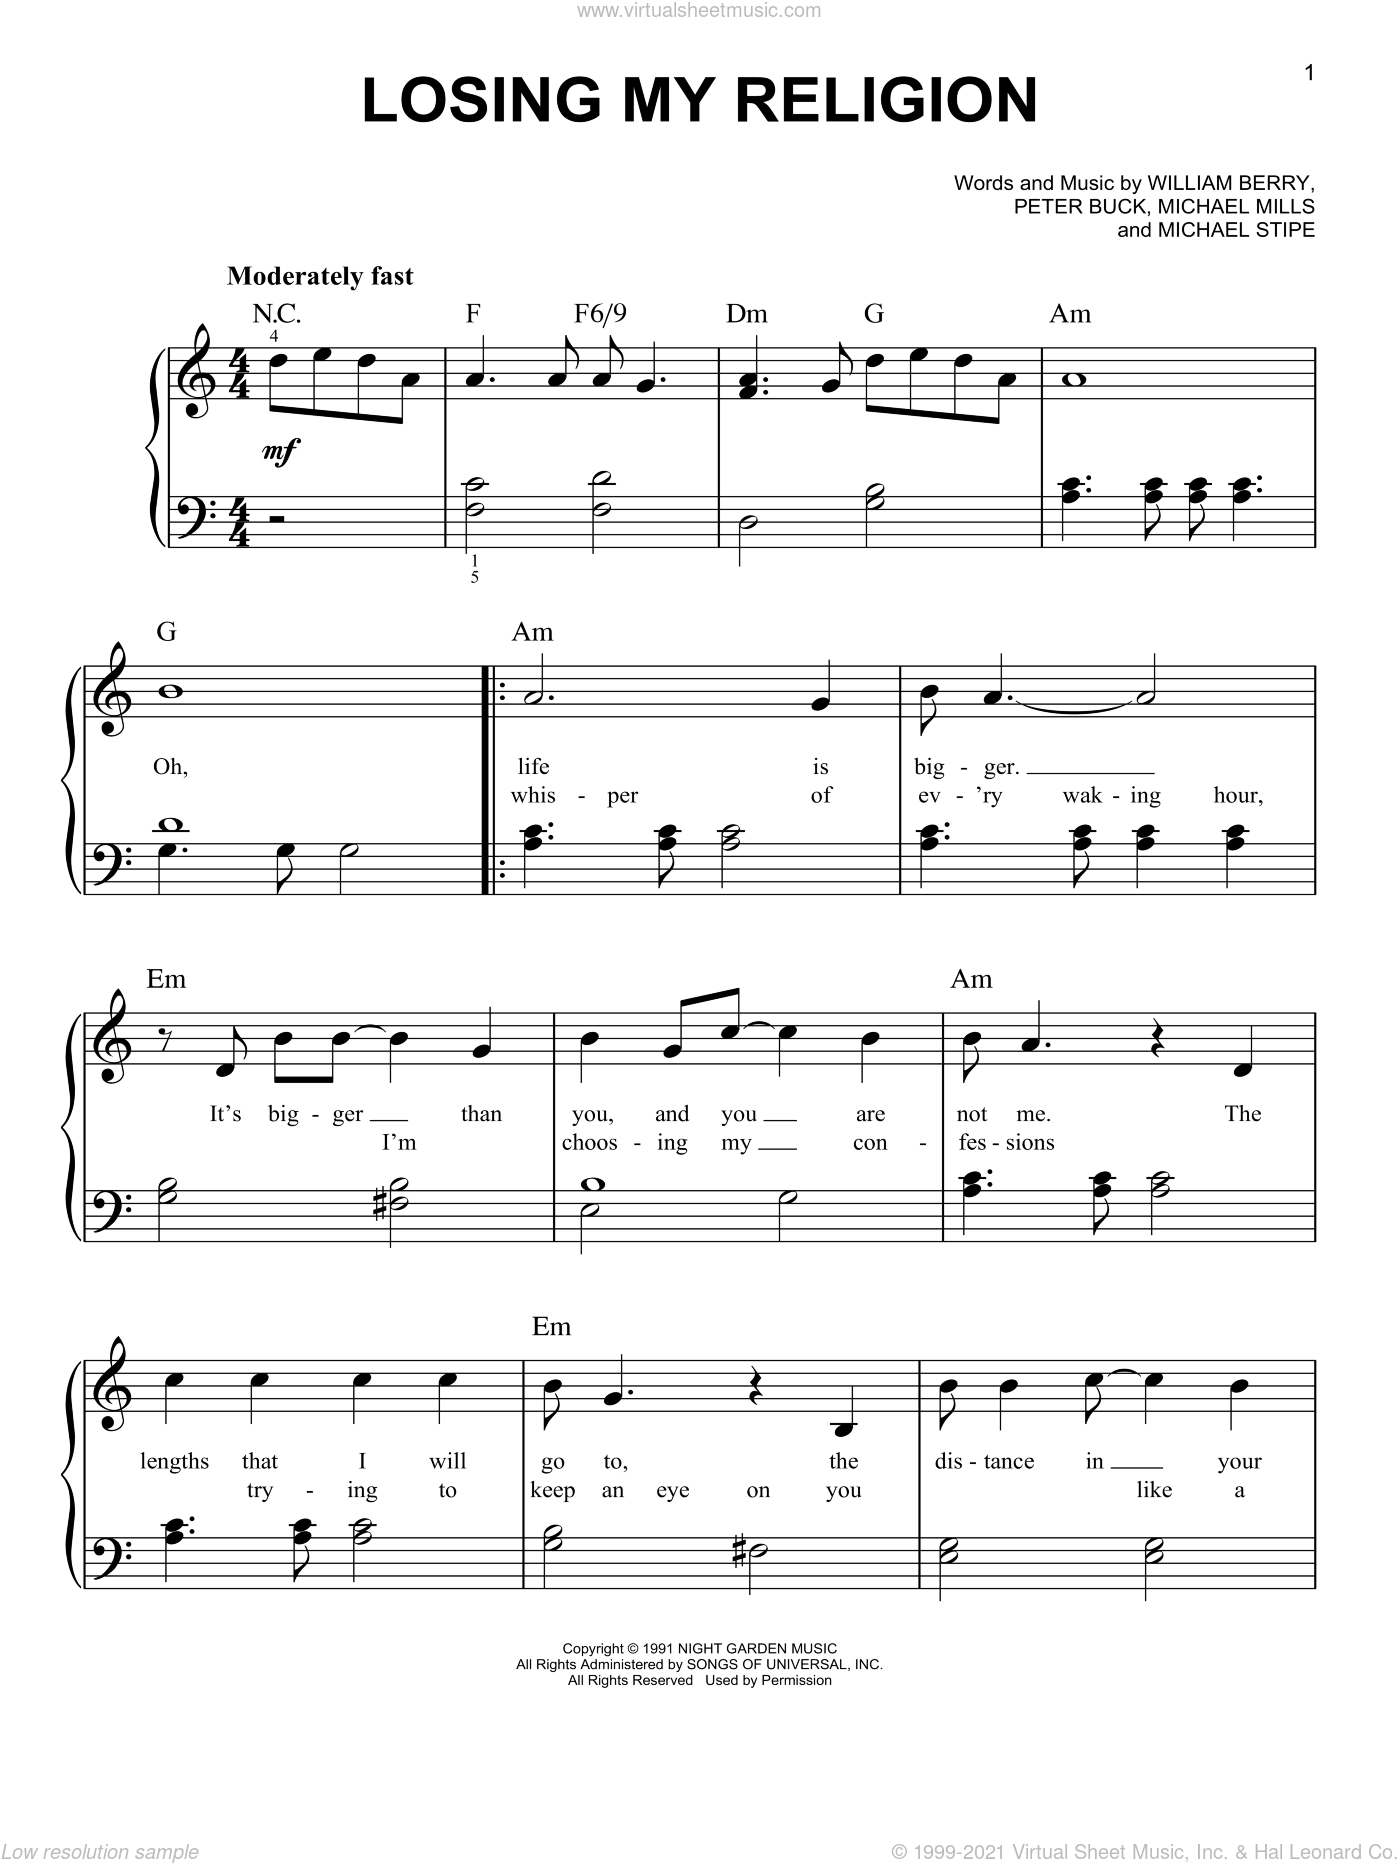 Rem Losing My Religion Sheet Music For Piano Solo